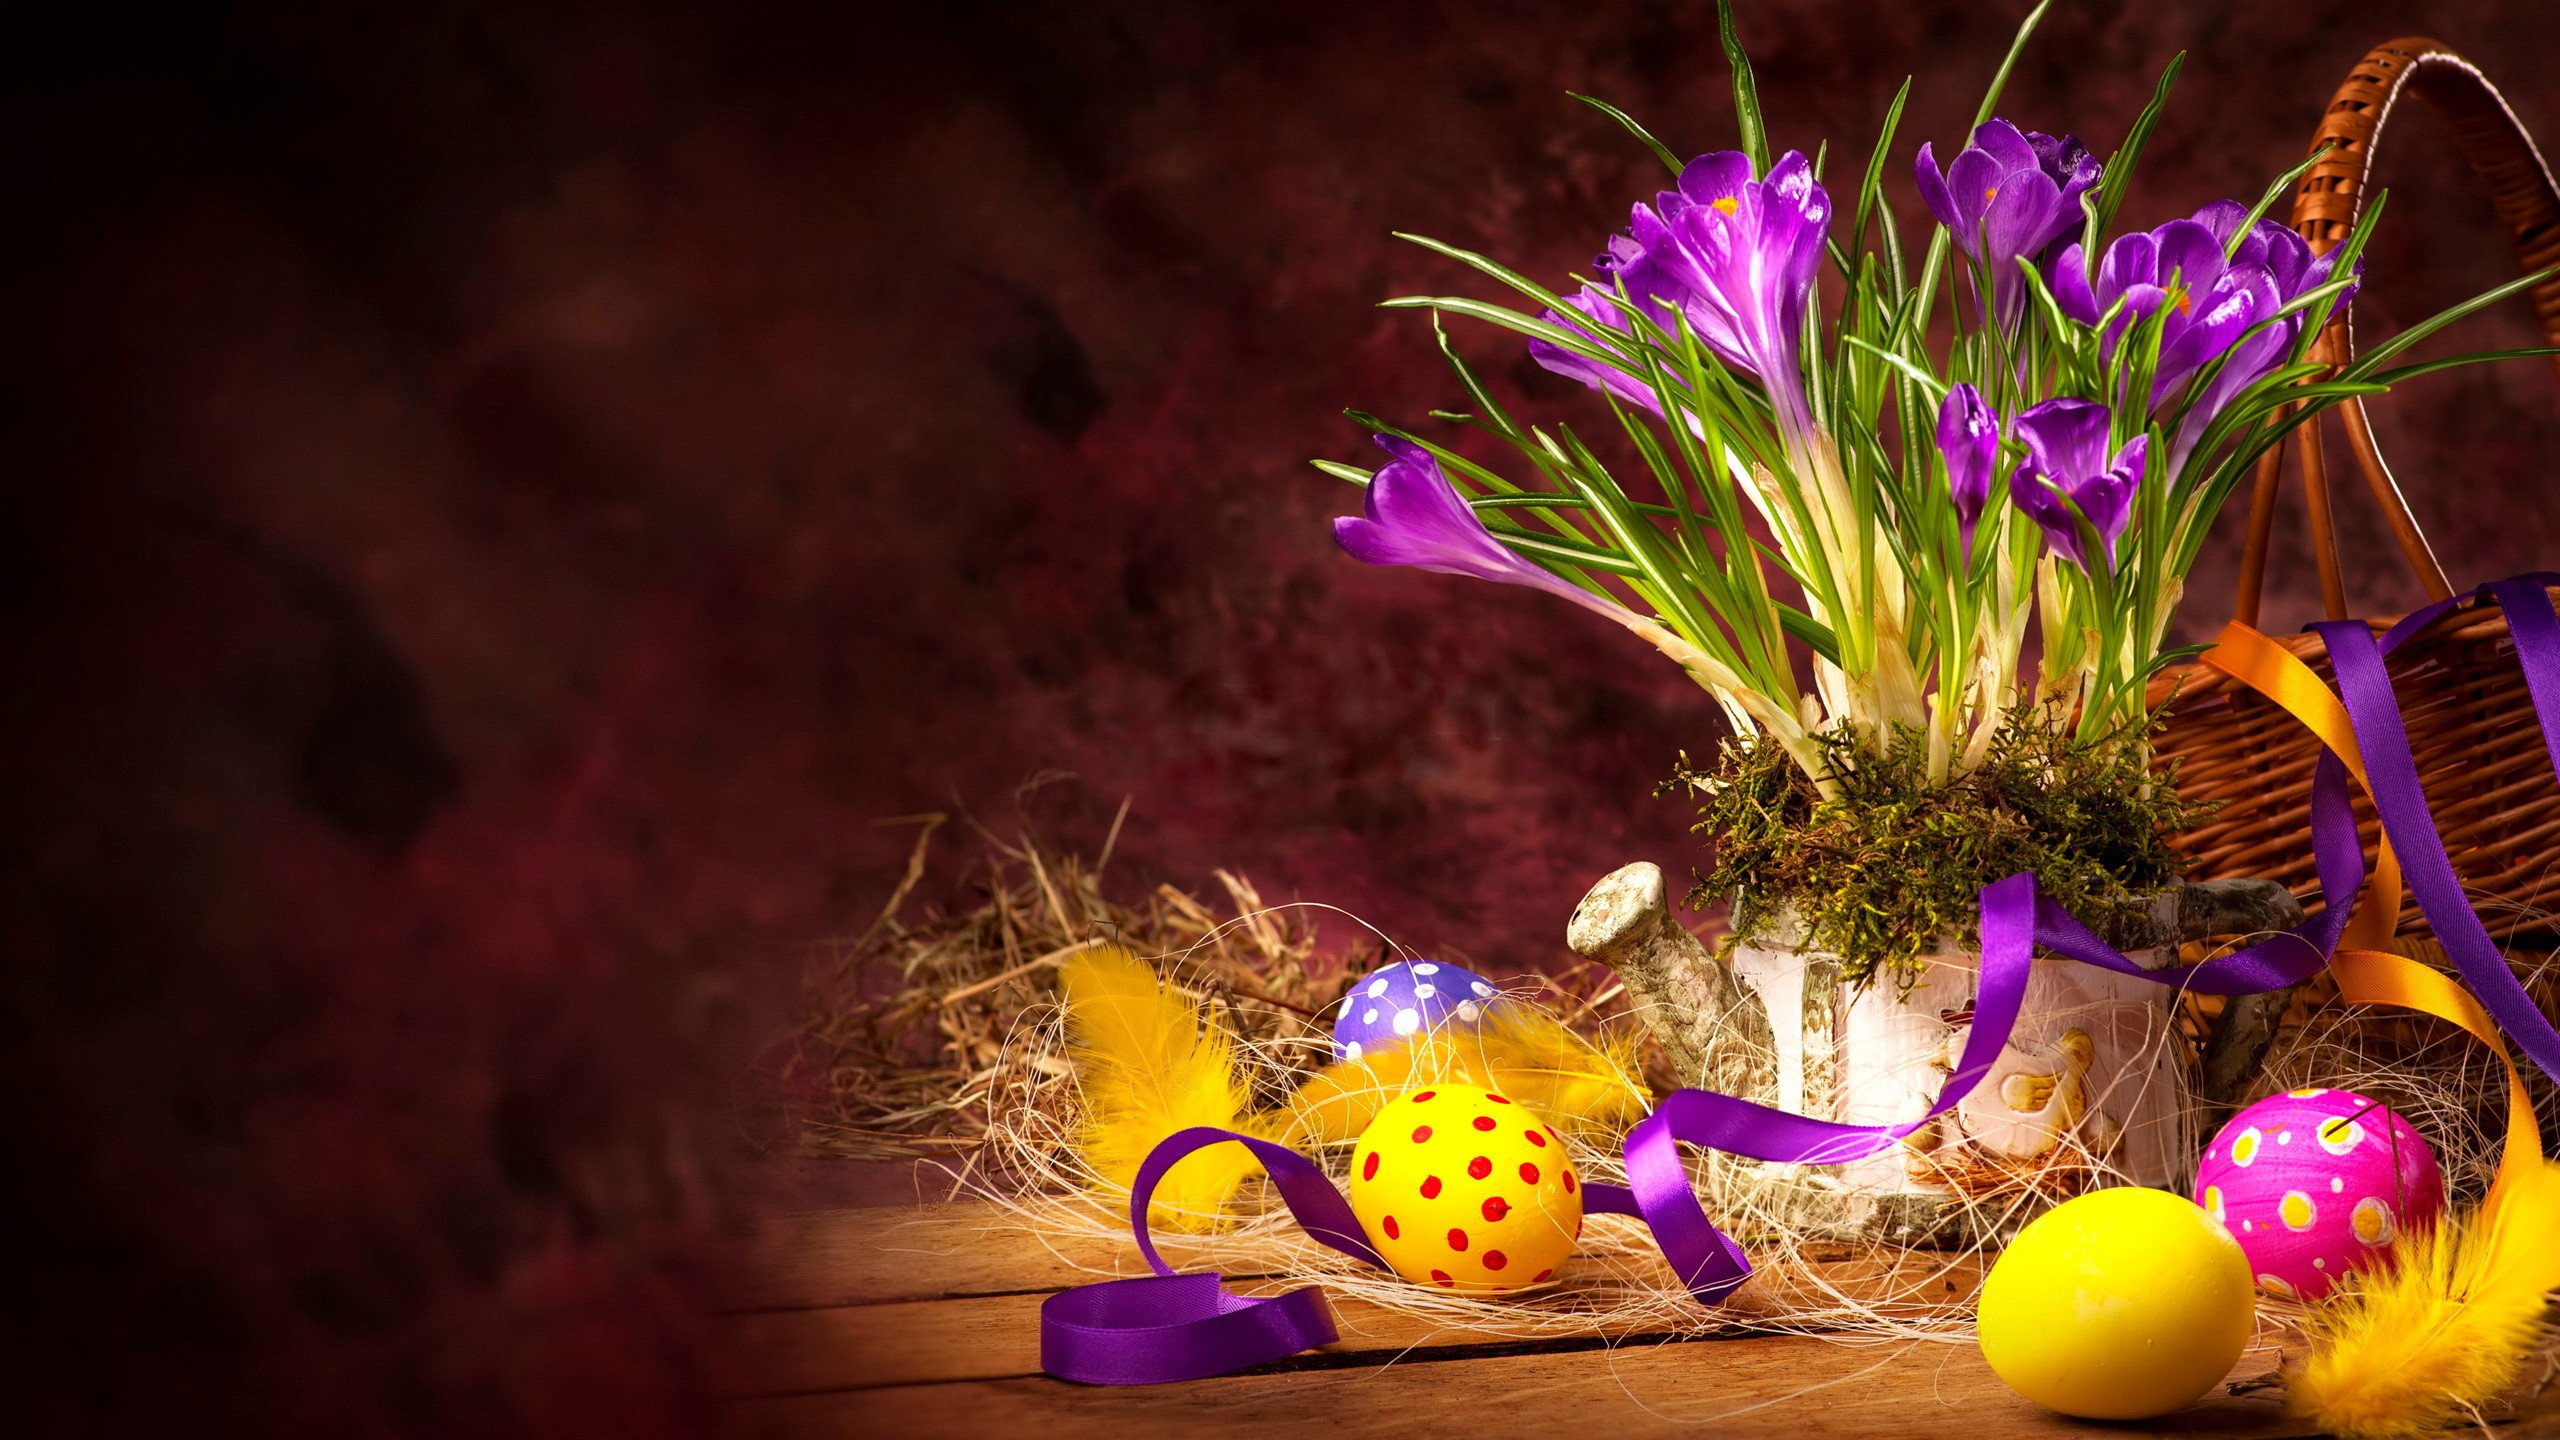 2560x1440  Hd Happy Easter Wallpaper Download Free PX ~ 3d Easter .